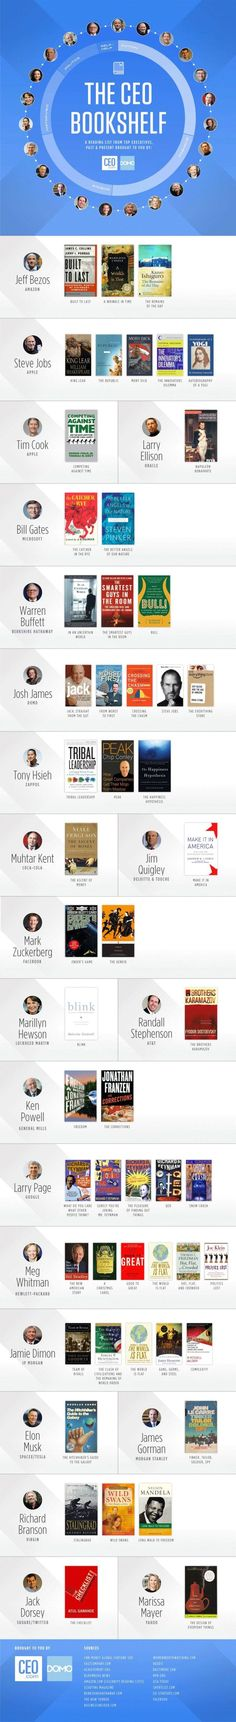 Favorite books of most influential business people (infographic)